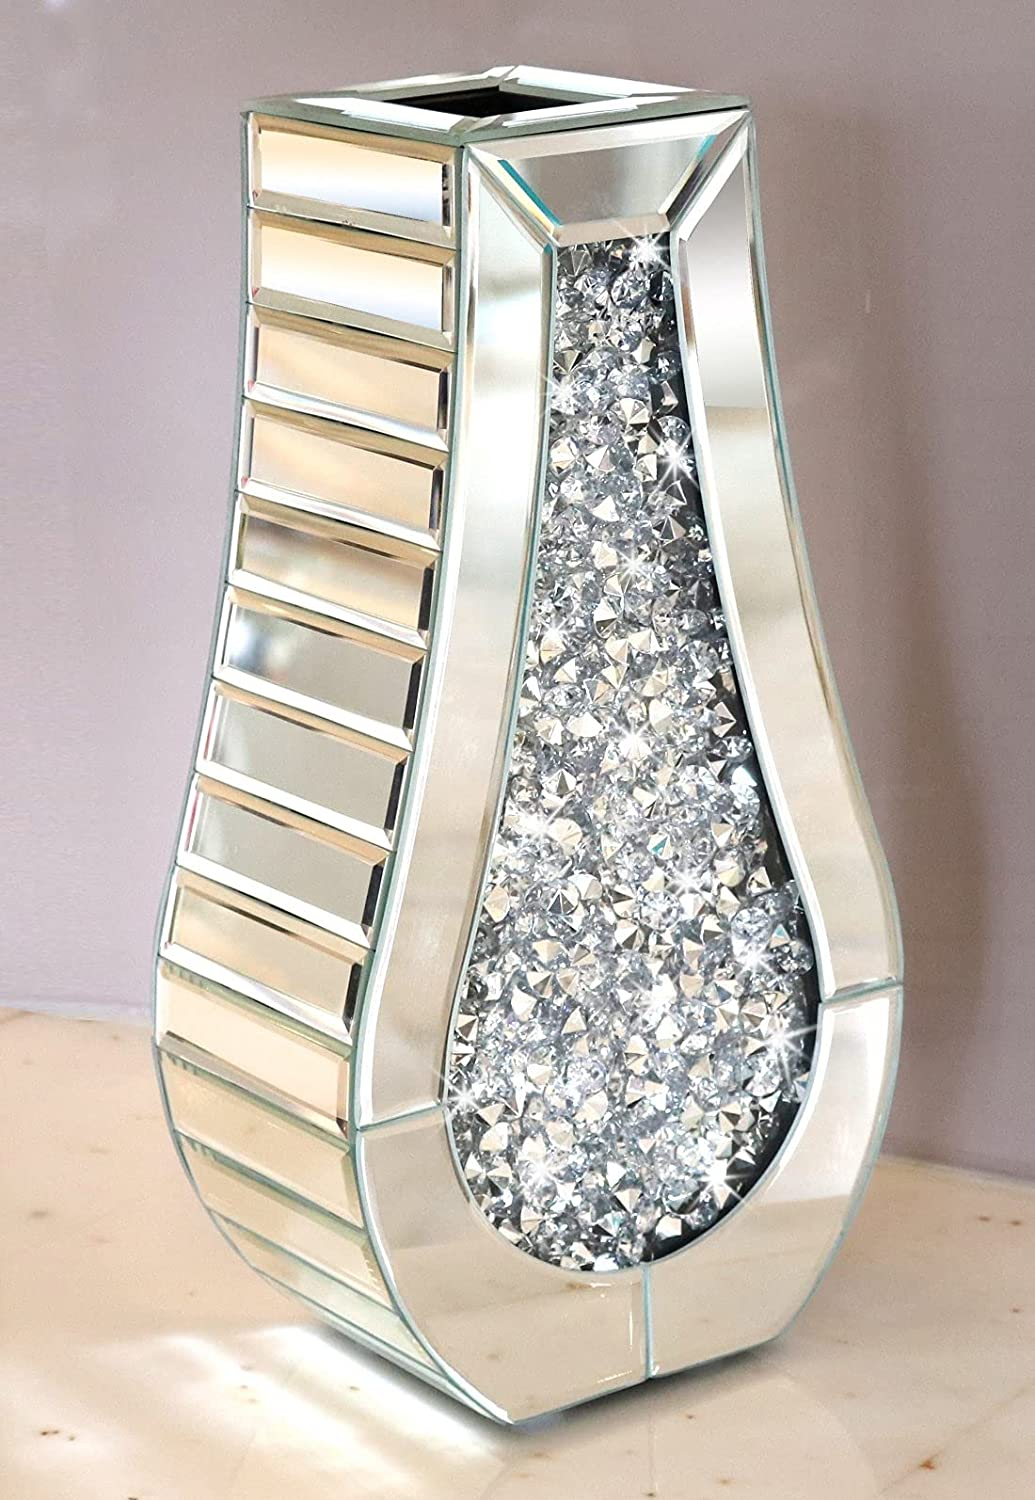 Crushed Factory outlet Diamond Mirror Choice Vase Crystal Silver Glass Decora Stunning